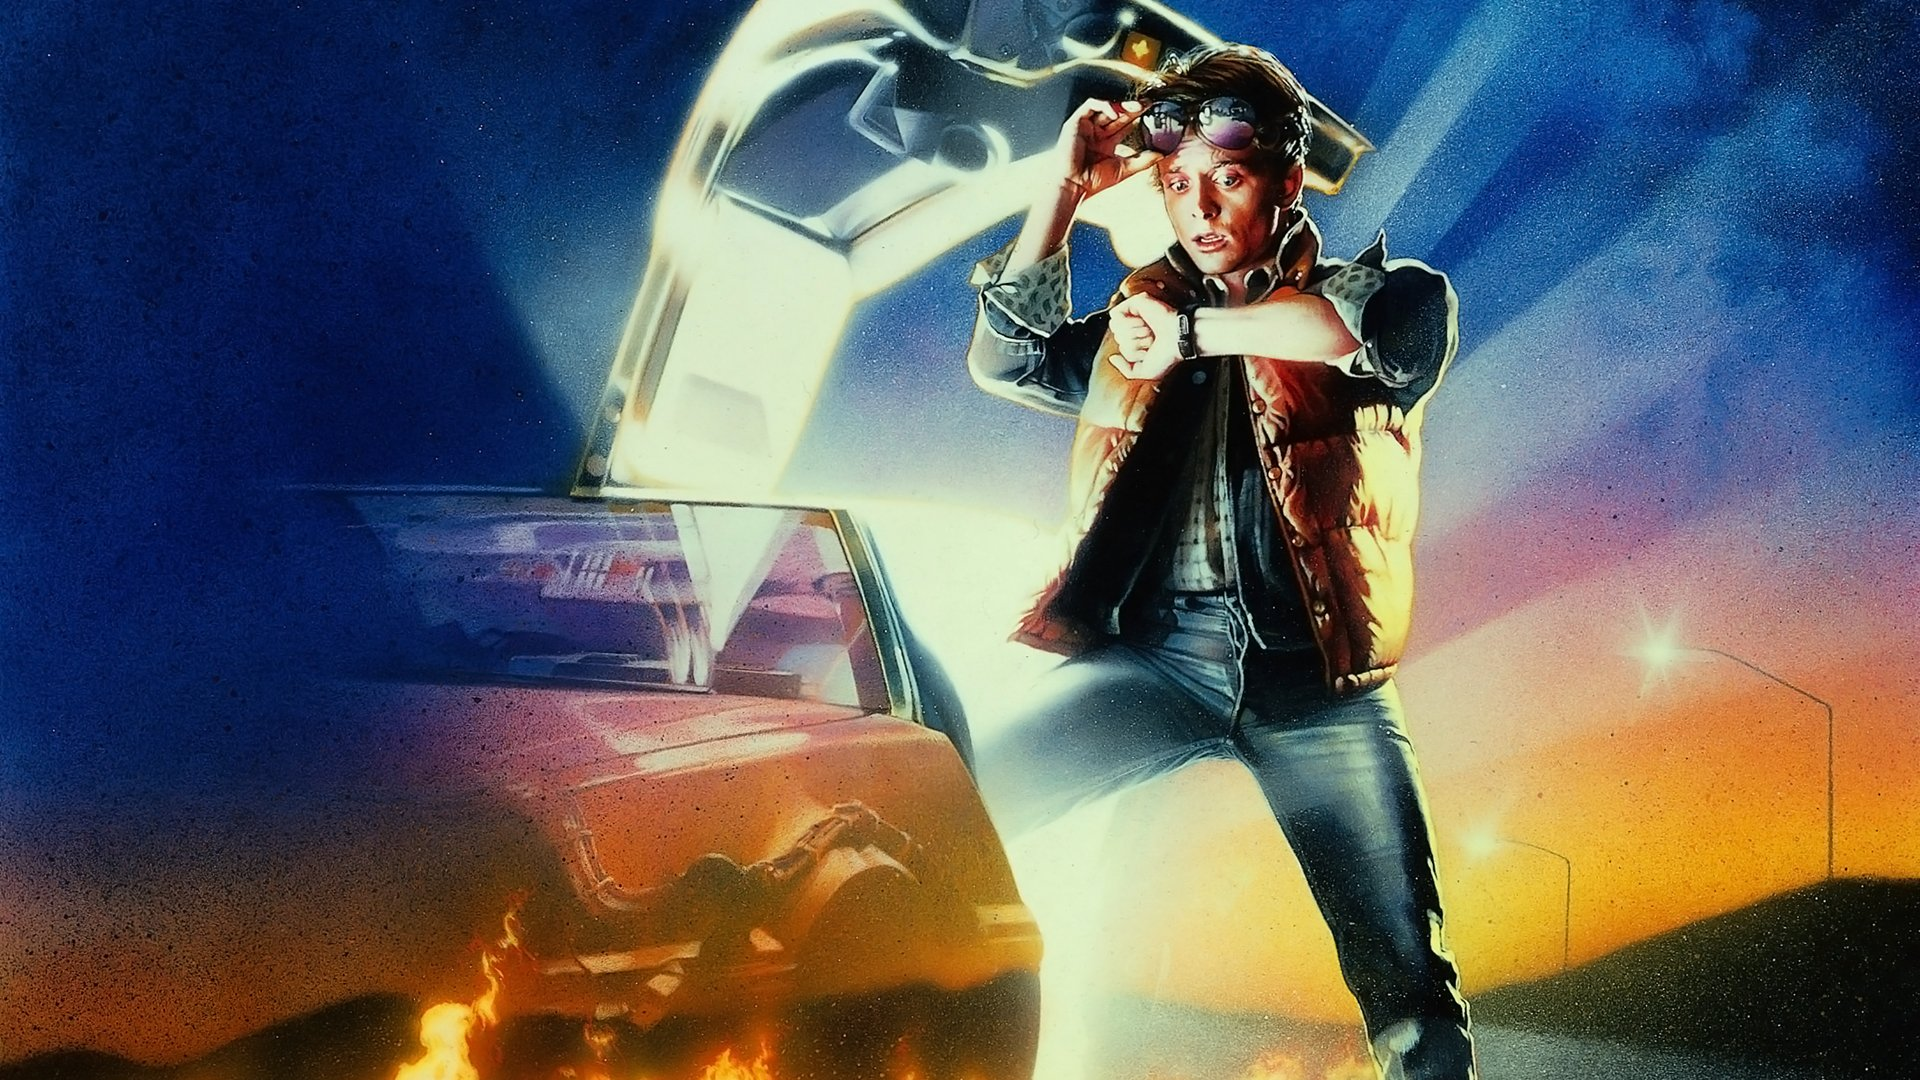 Back To The Future Wallpaper Iphone  images free download 1920x1080